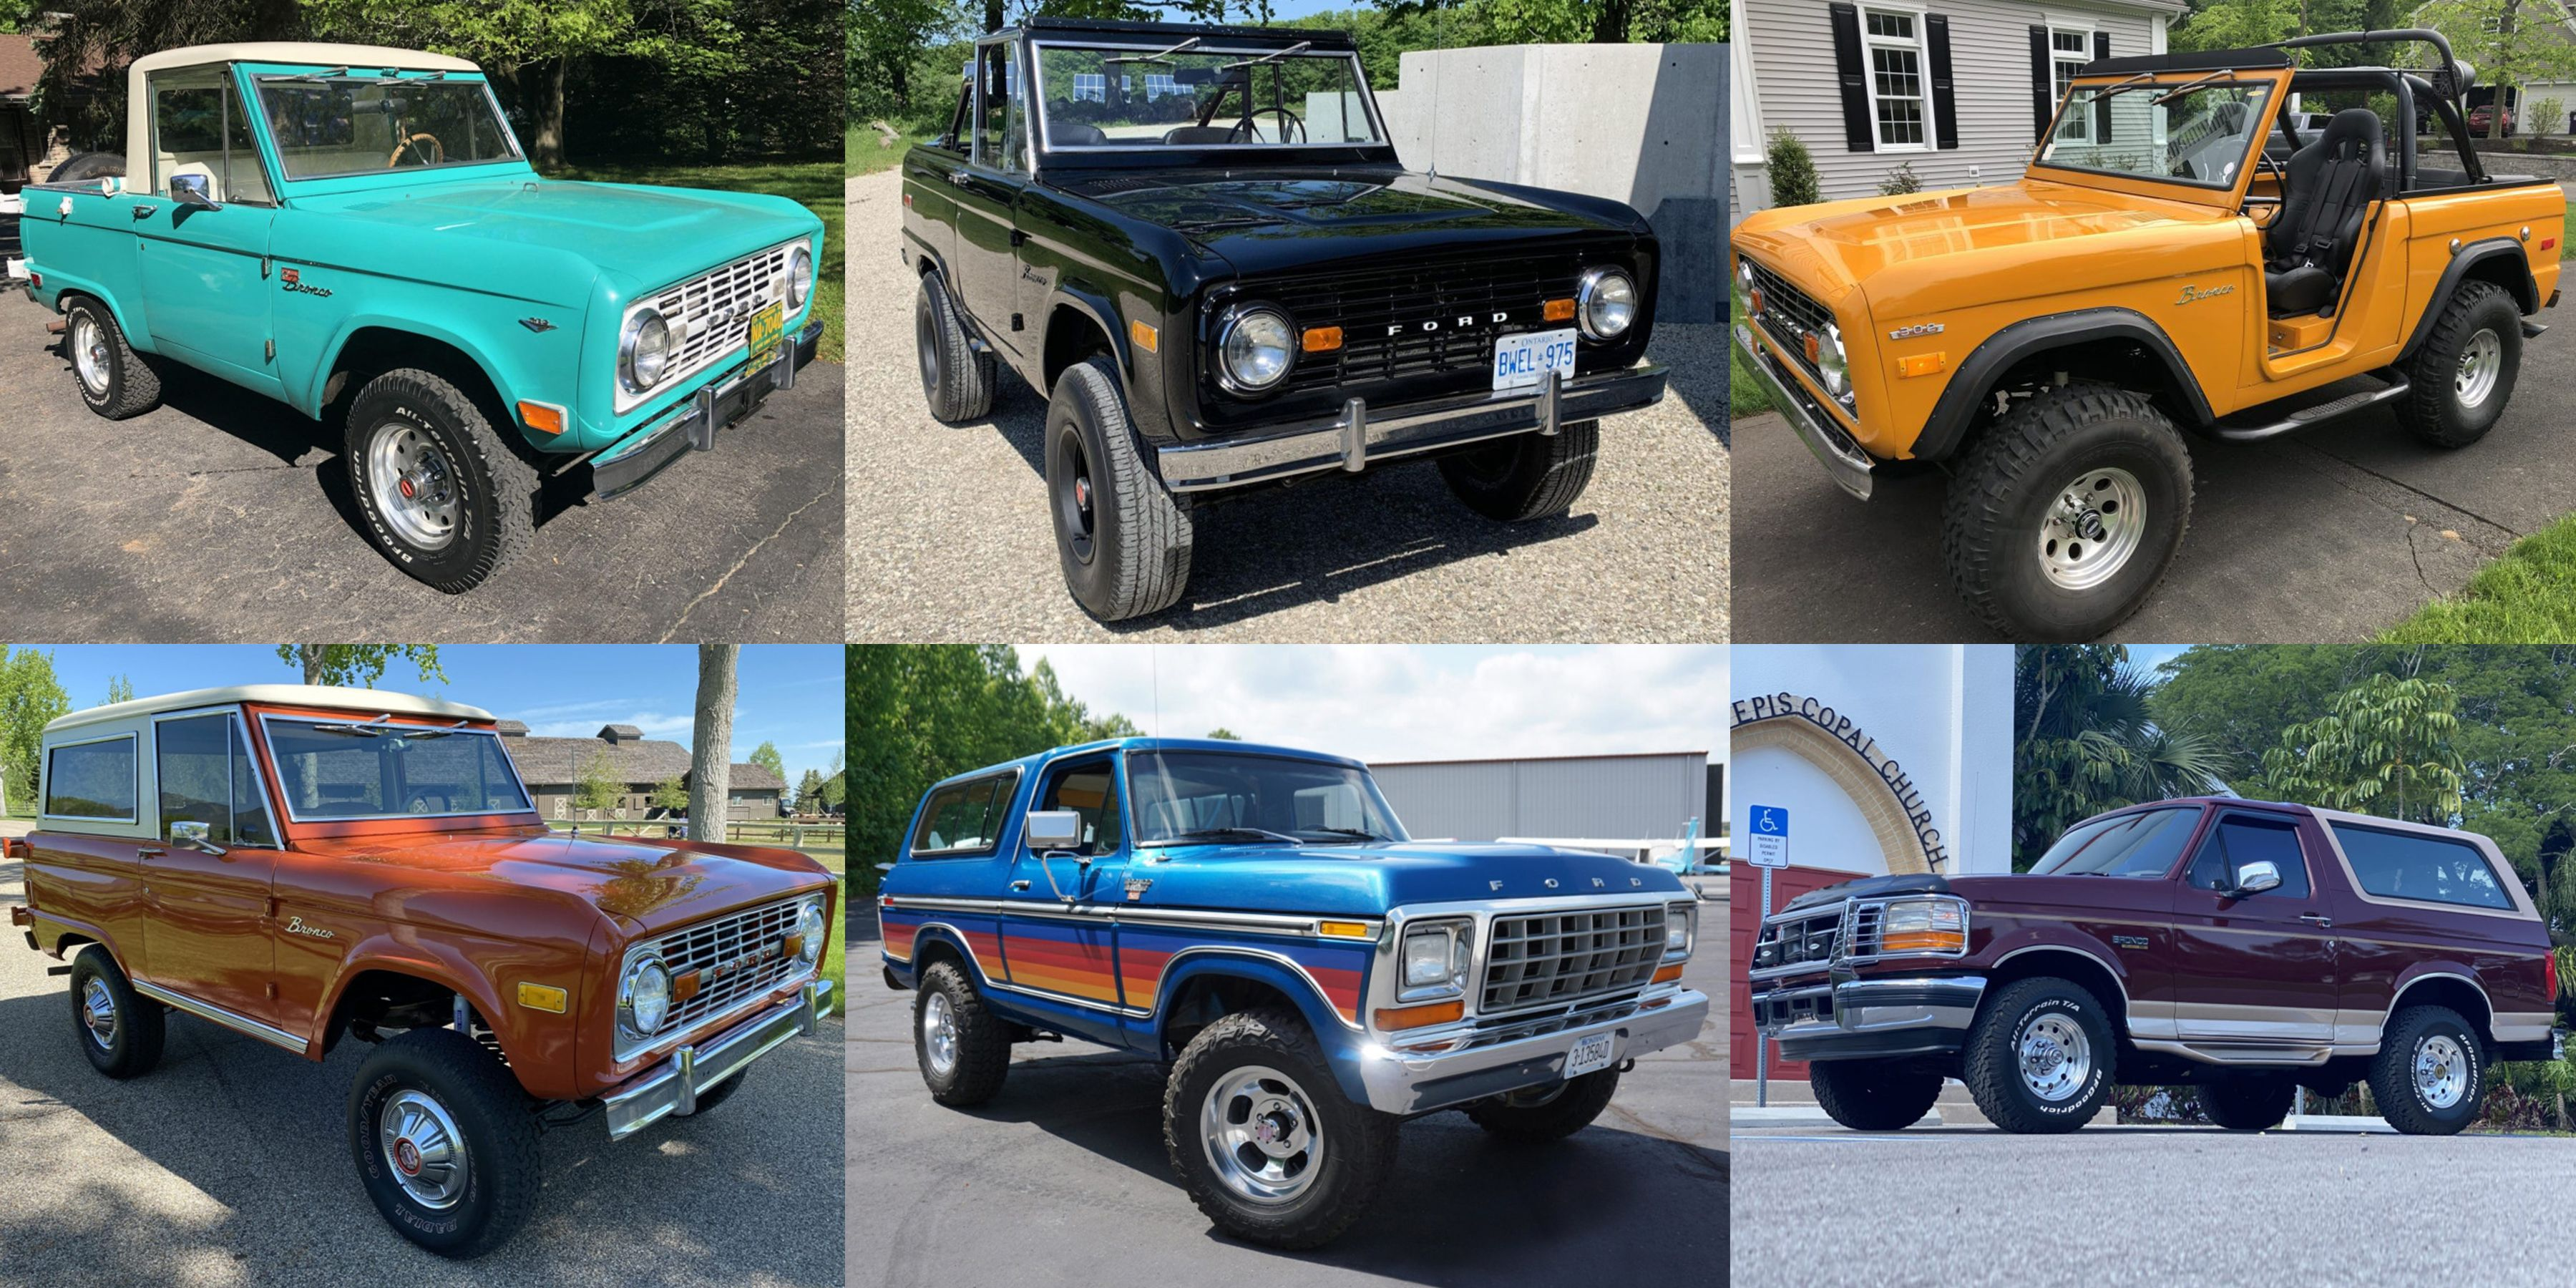 10 Vintage Ford Broncos To Curb Your Appetite